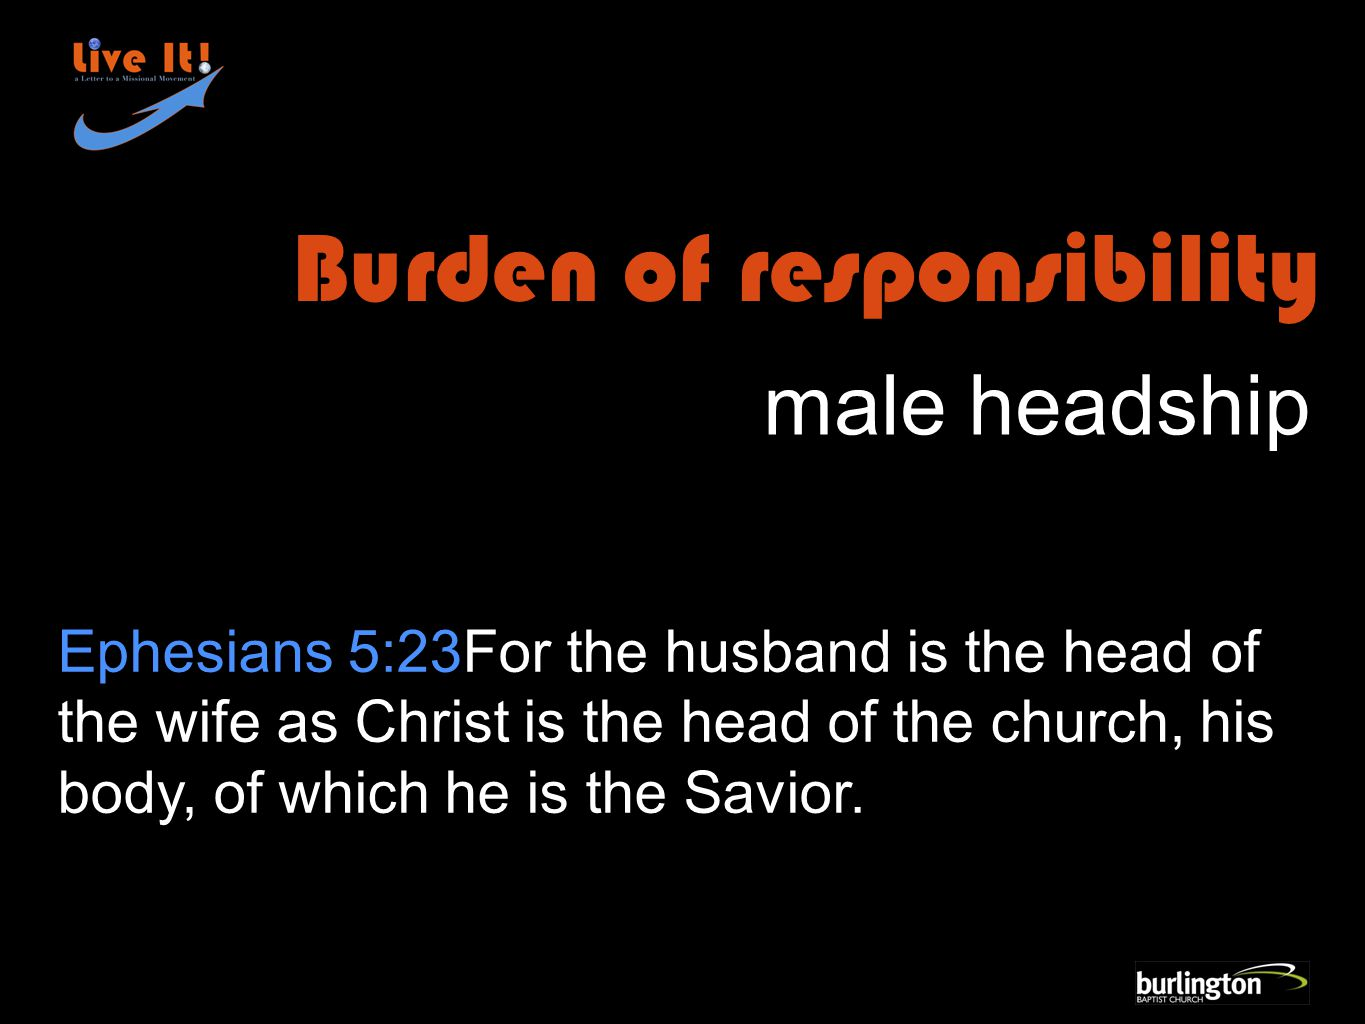 Ephesians 5:23For the husband is the head of the wife as Christ is the head of the church, his body, of which he is the Savior.